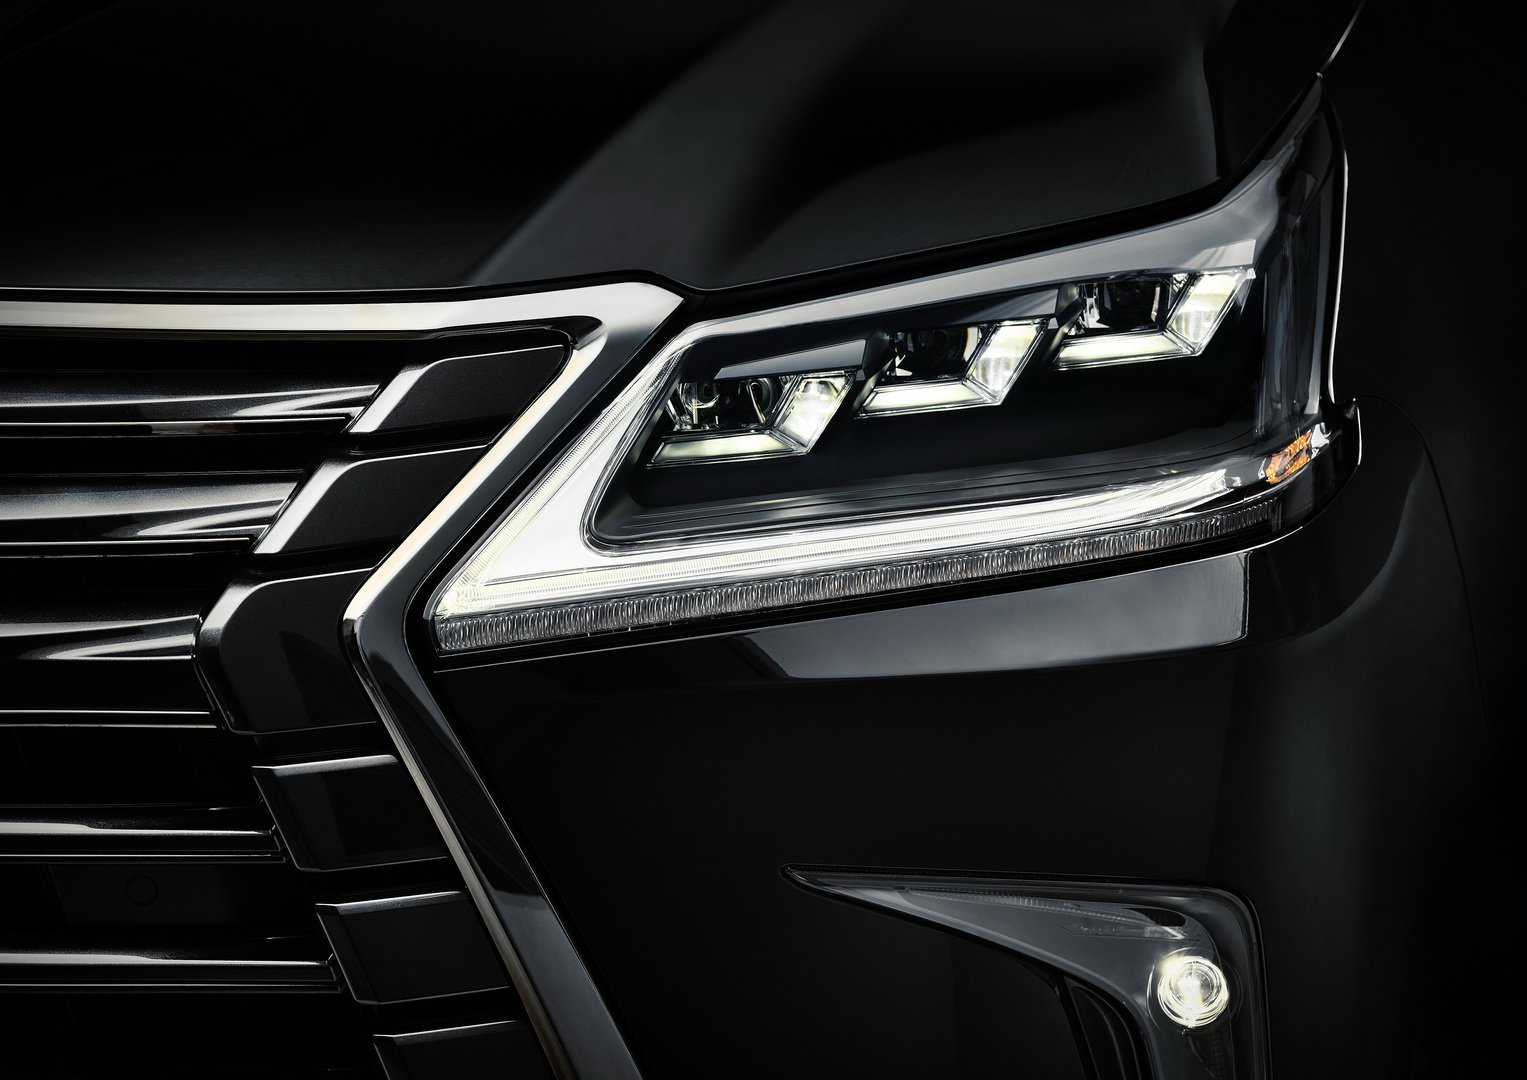 Lexus LX Inspiration Series (5)